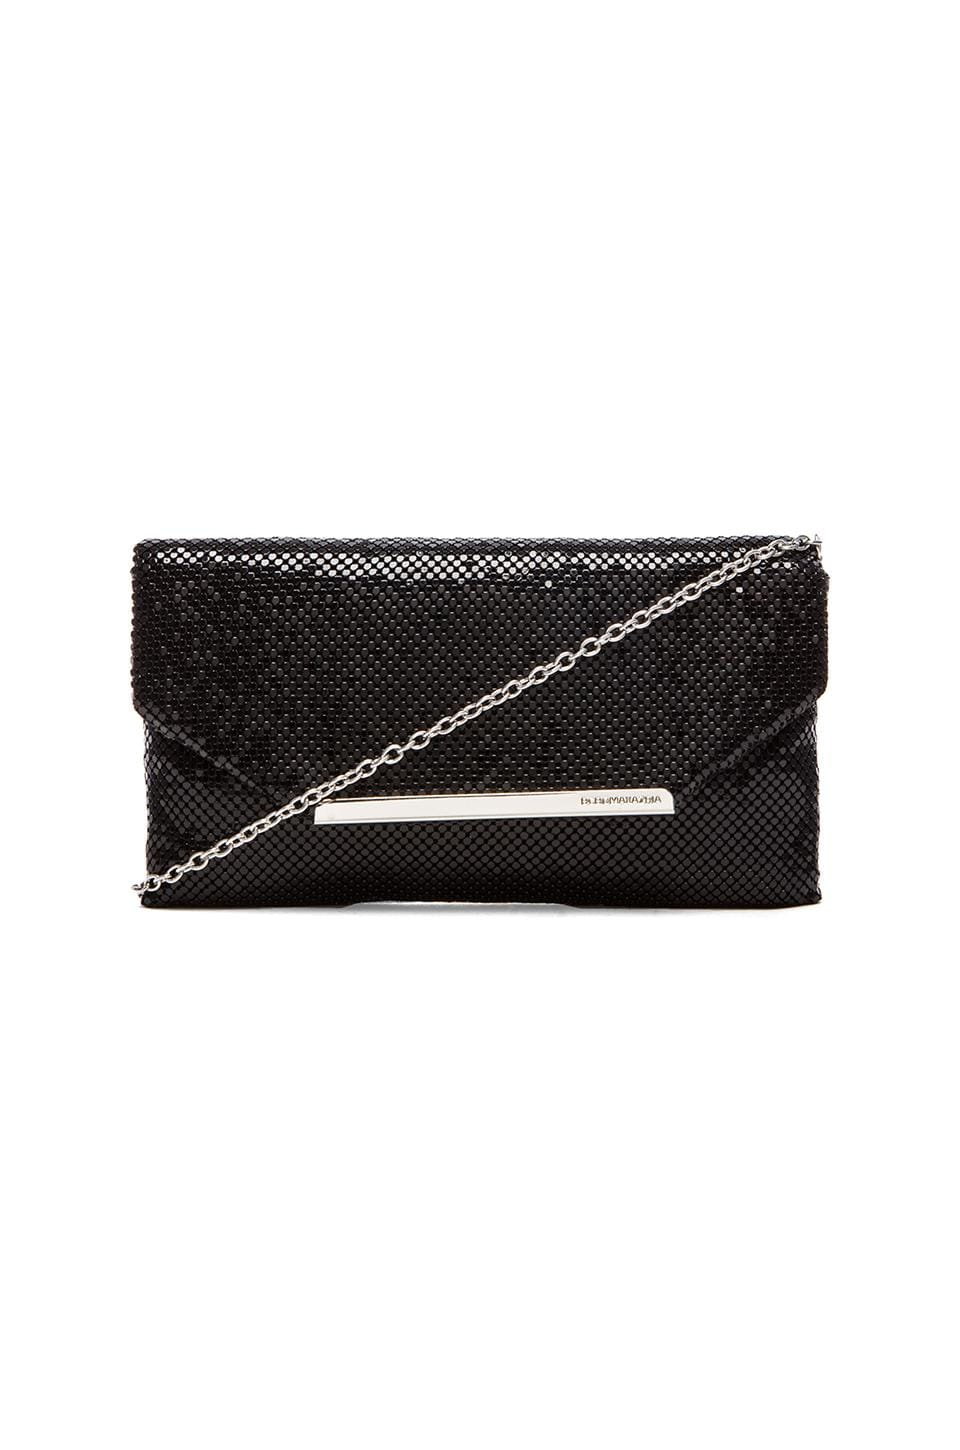 BCBGMAXAZRIA Bardot Metal Mesh Clutch in Black